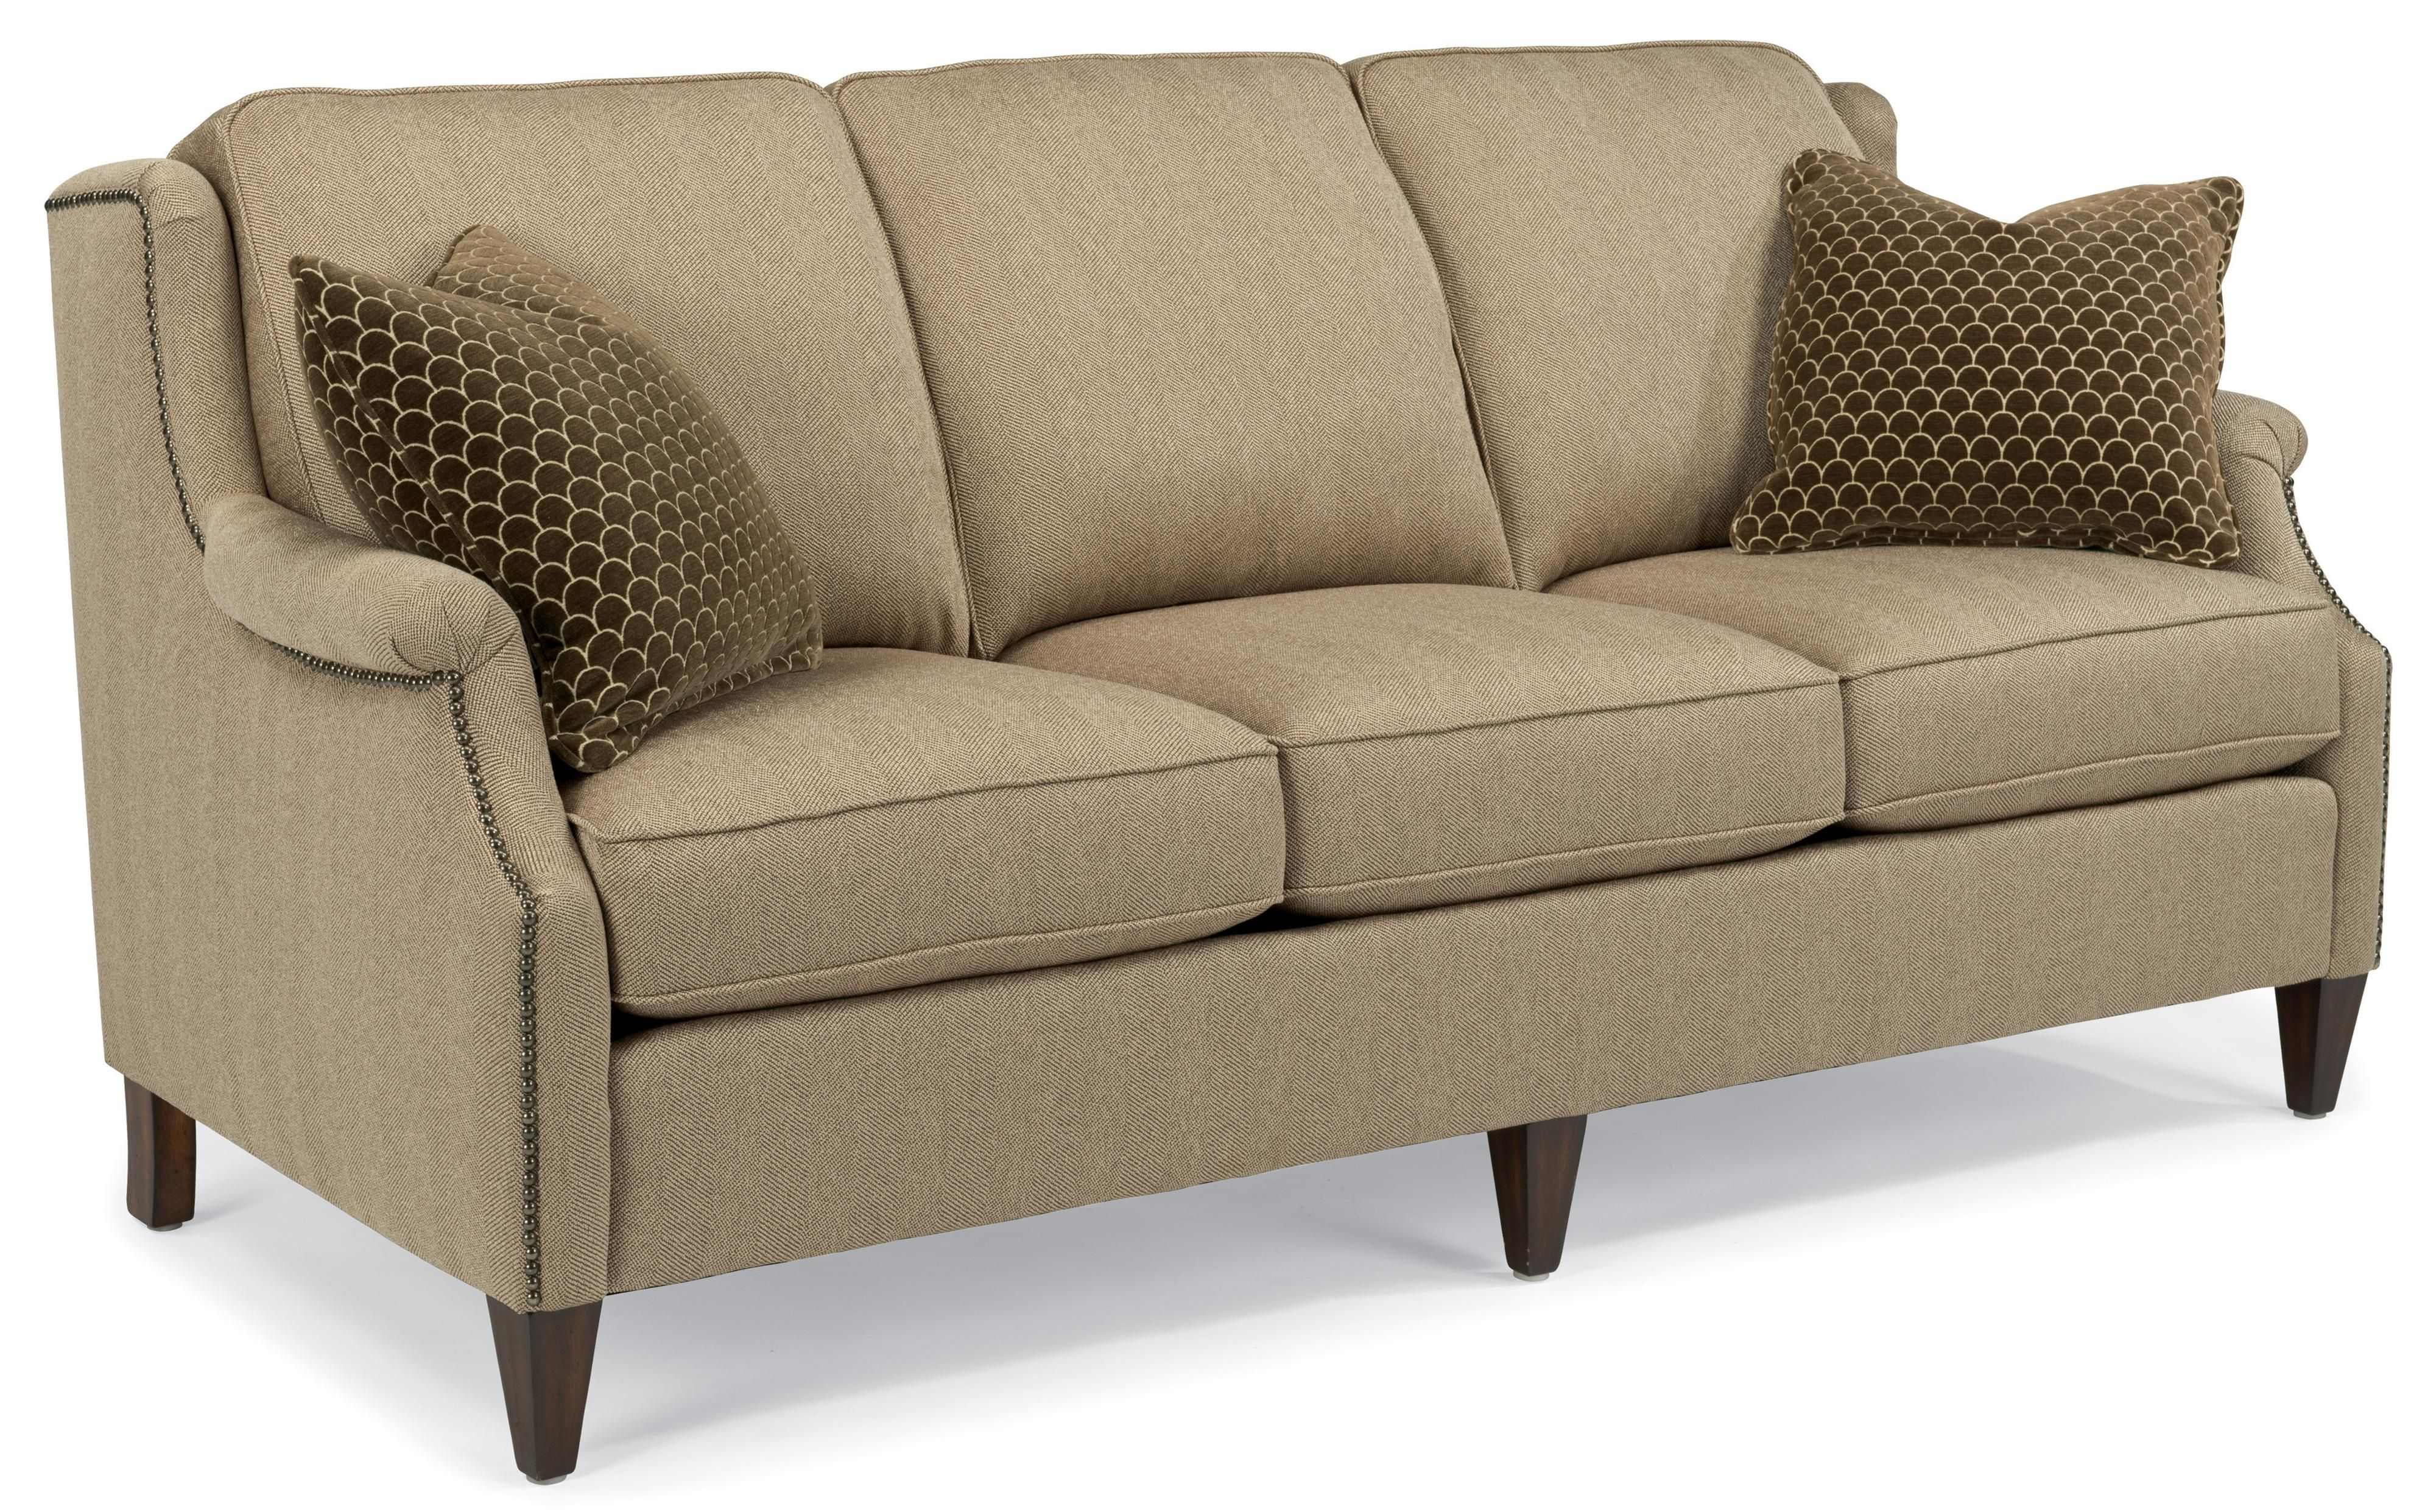 For Flexsteel Fabric Sofa And Other Living Room Sofas At Direct Furniture Galleries In Fairfax Va The Zevon Style Is A Uniquely Traditional